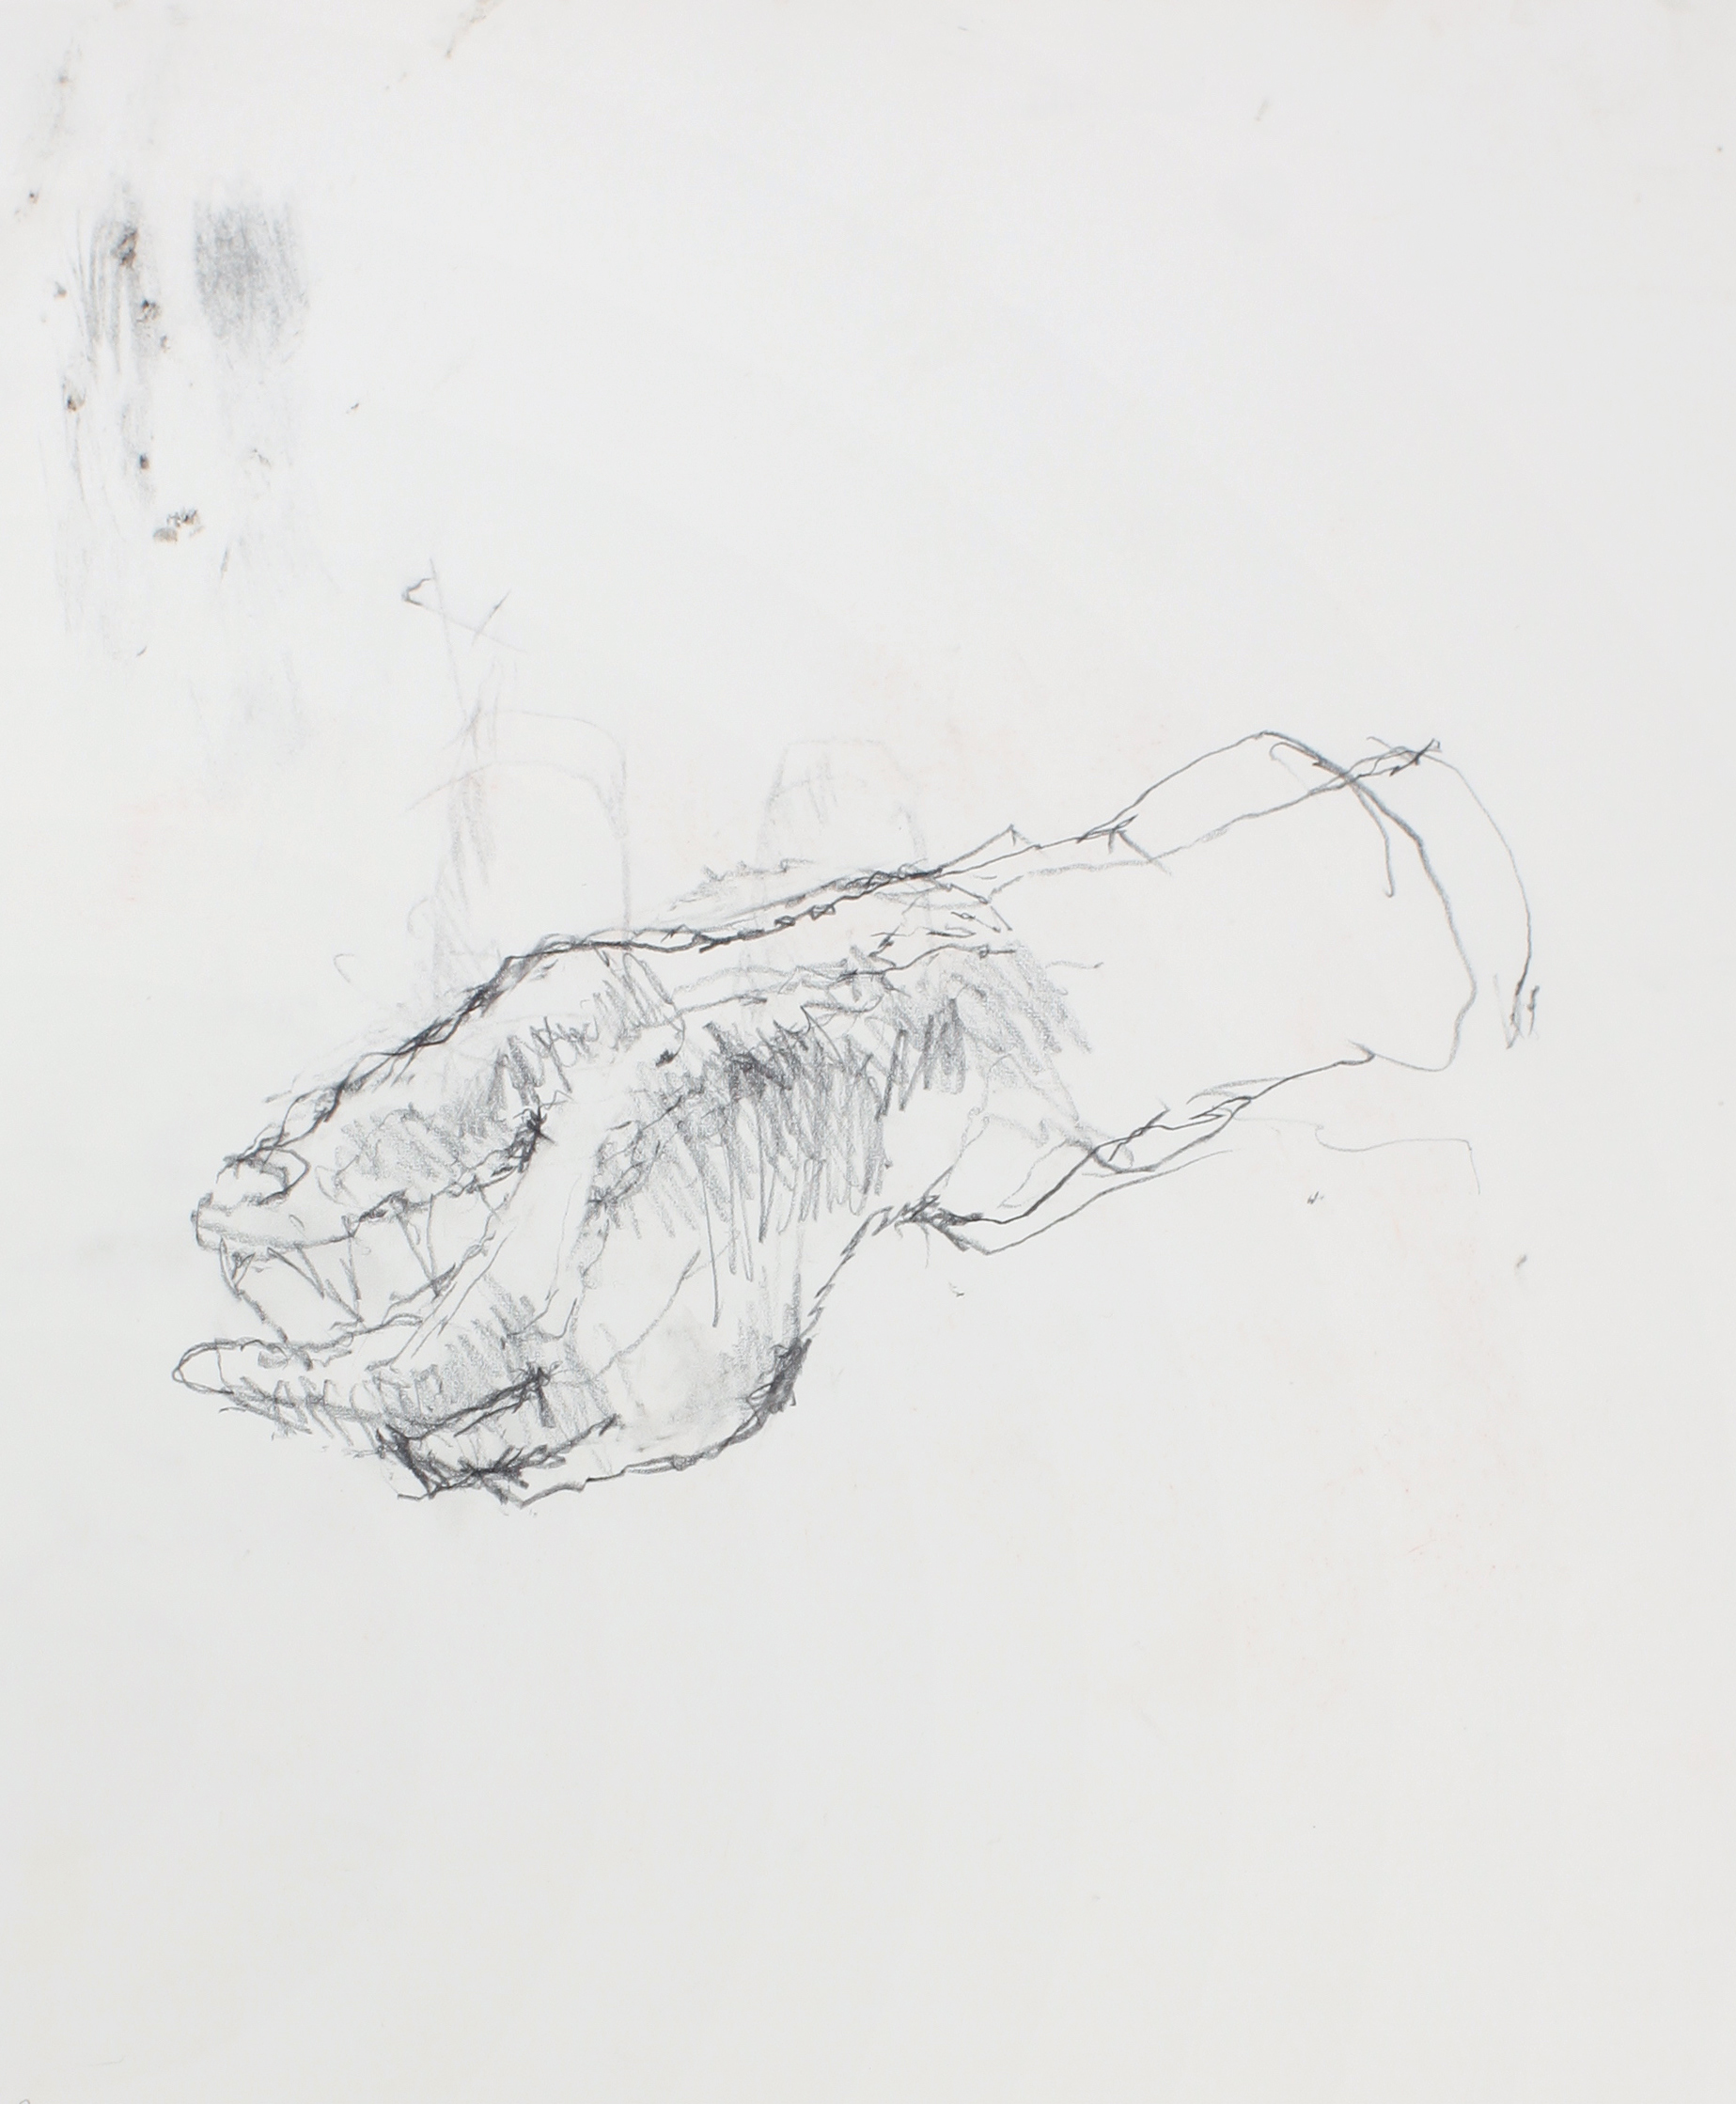 1990s_Study_of_Left_Hand_pencil_on_paper_14x11in_WPF585.jpg